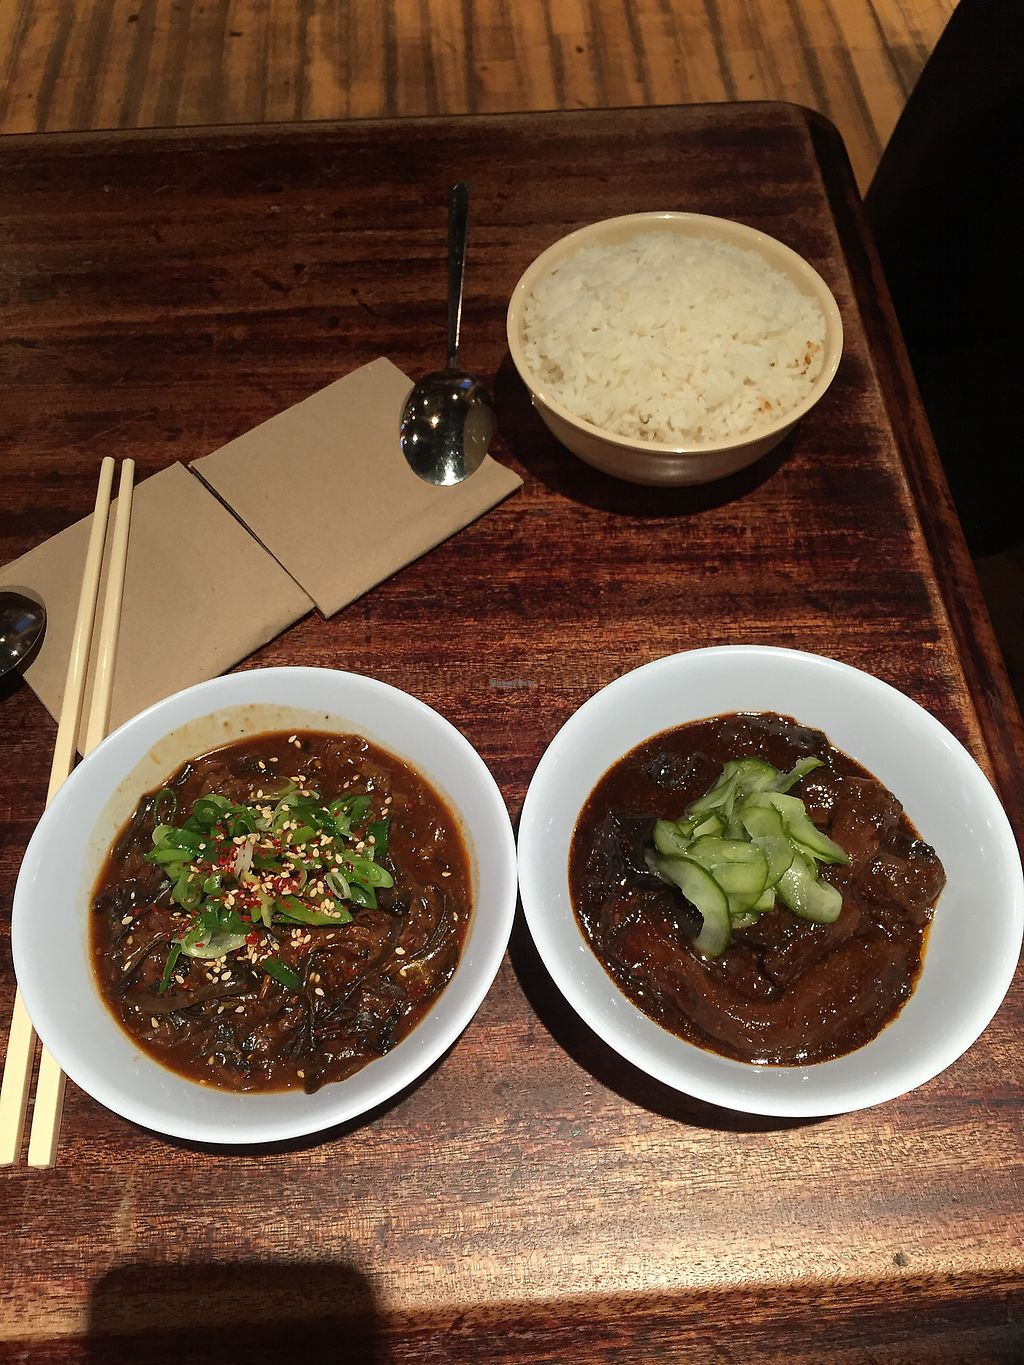 """Photo of The Hug and Pint  by <a href=""""/members/profile/milcheto"""">milcheto</a> <br/>Black fungus and beancurd. On the right- aubergine, pepper and pickled cucumbers <br/> January 26, 2018  - <a href='/contact/abuse/image/63341/351272'>Report</a>"""